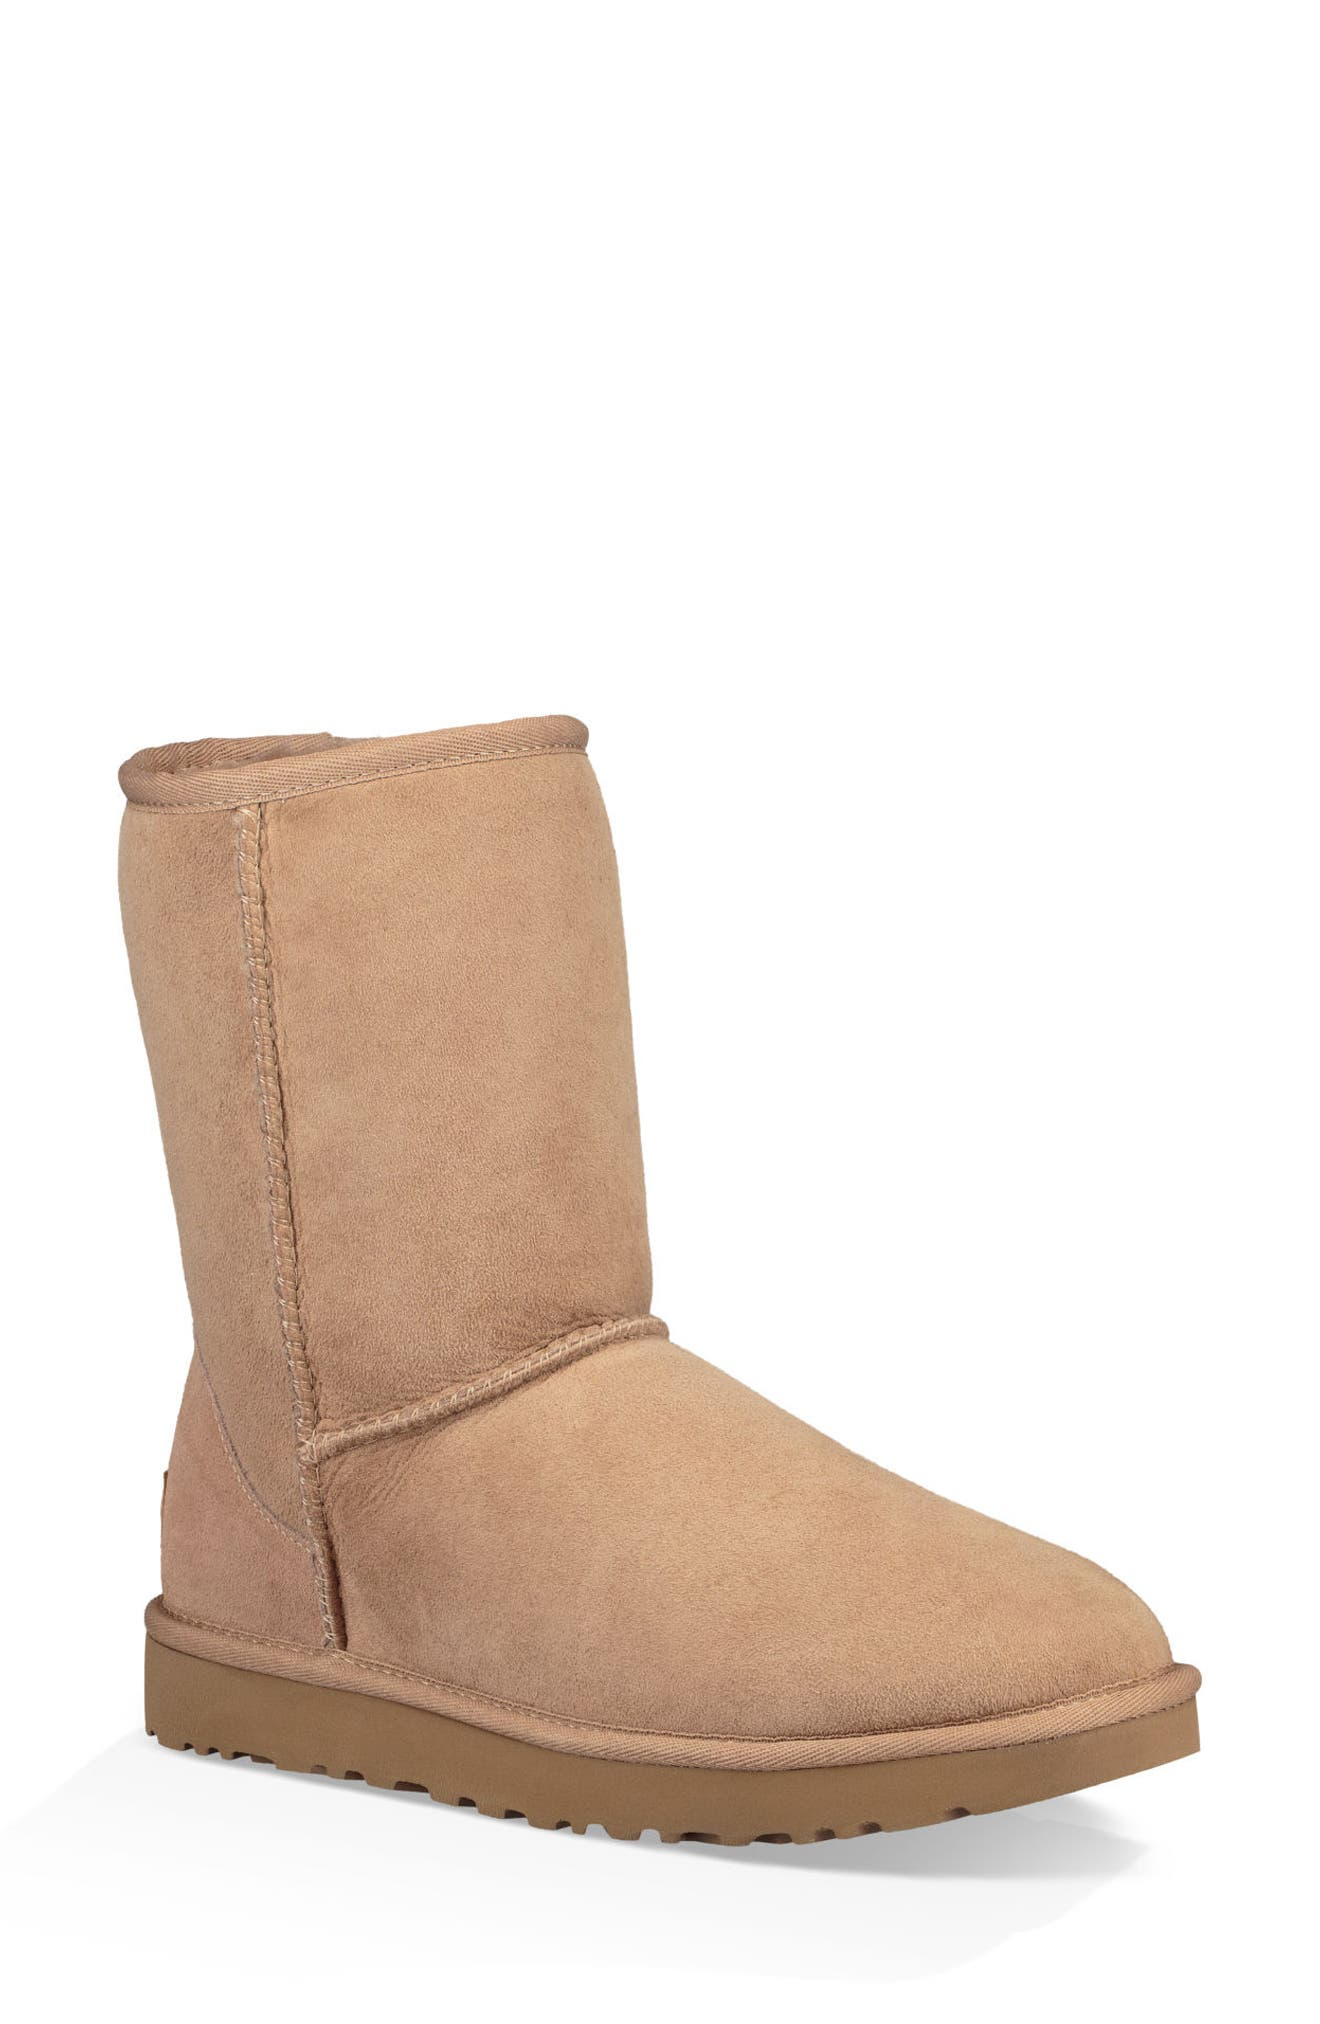 'Classic II' Genuine Shearling Lined Short Boot,                             Main thumbnail 1, color,                             Fawn Suede